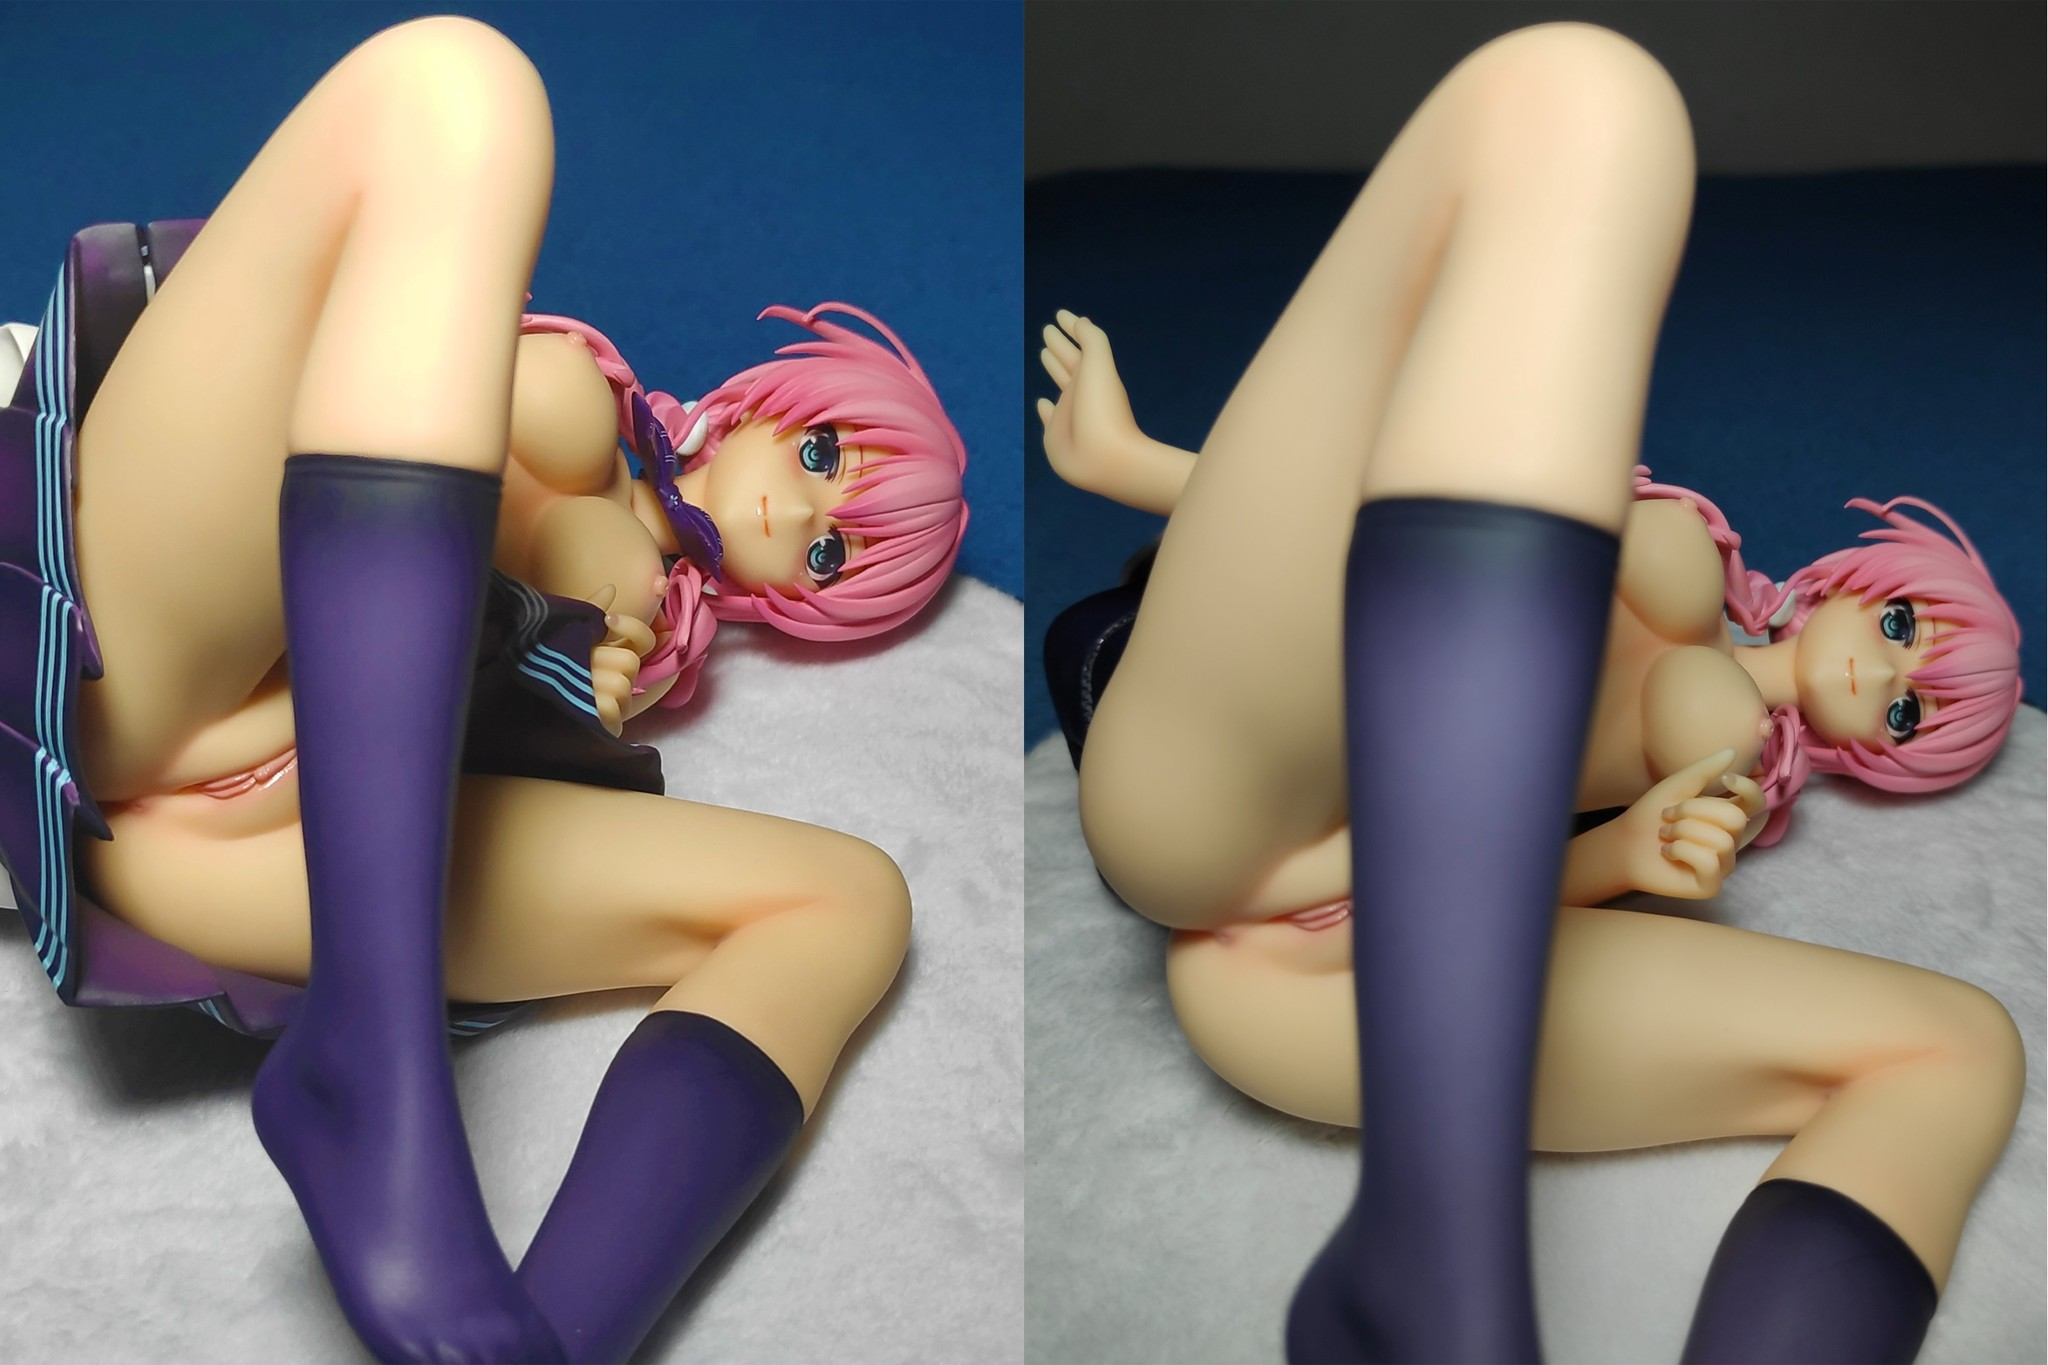 https://static.myfigurecollection.net/upload/pictures/2020/02/26/2396317.jpeg